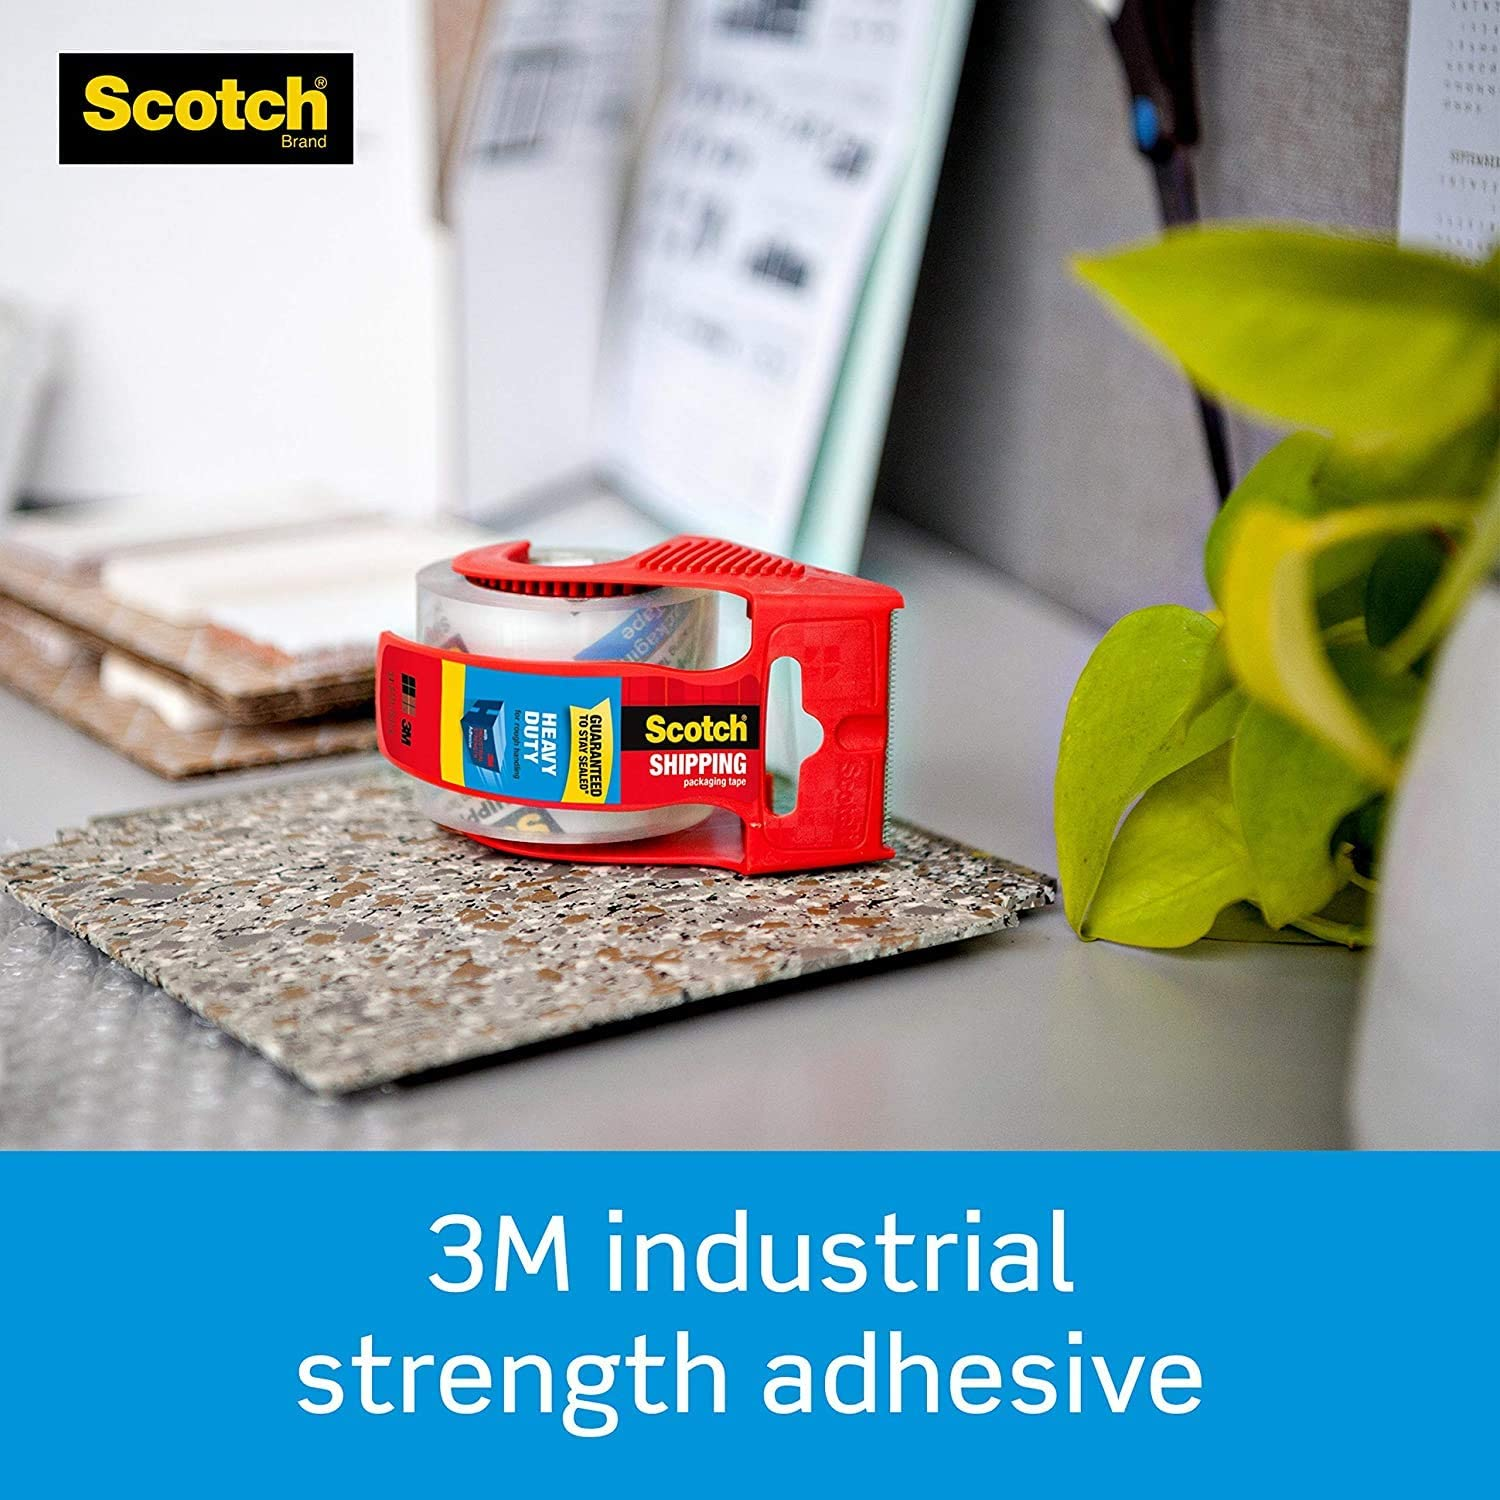 Clear Shipping /& Moving 1.5 Core 6 Rolls with Dispenser Great for Packing 1 Pack 1.88 x 22.2 Yards Scotch Heavy Duty Shipping Packaging Tape